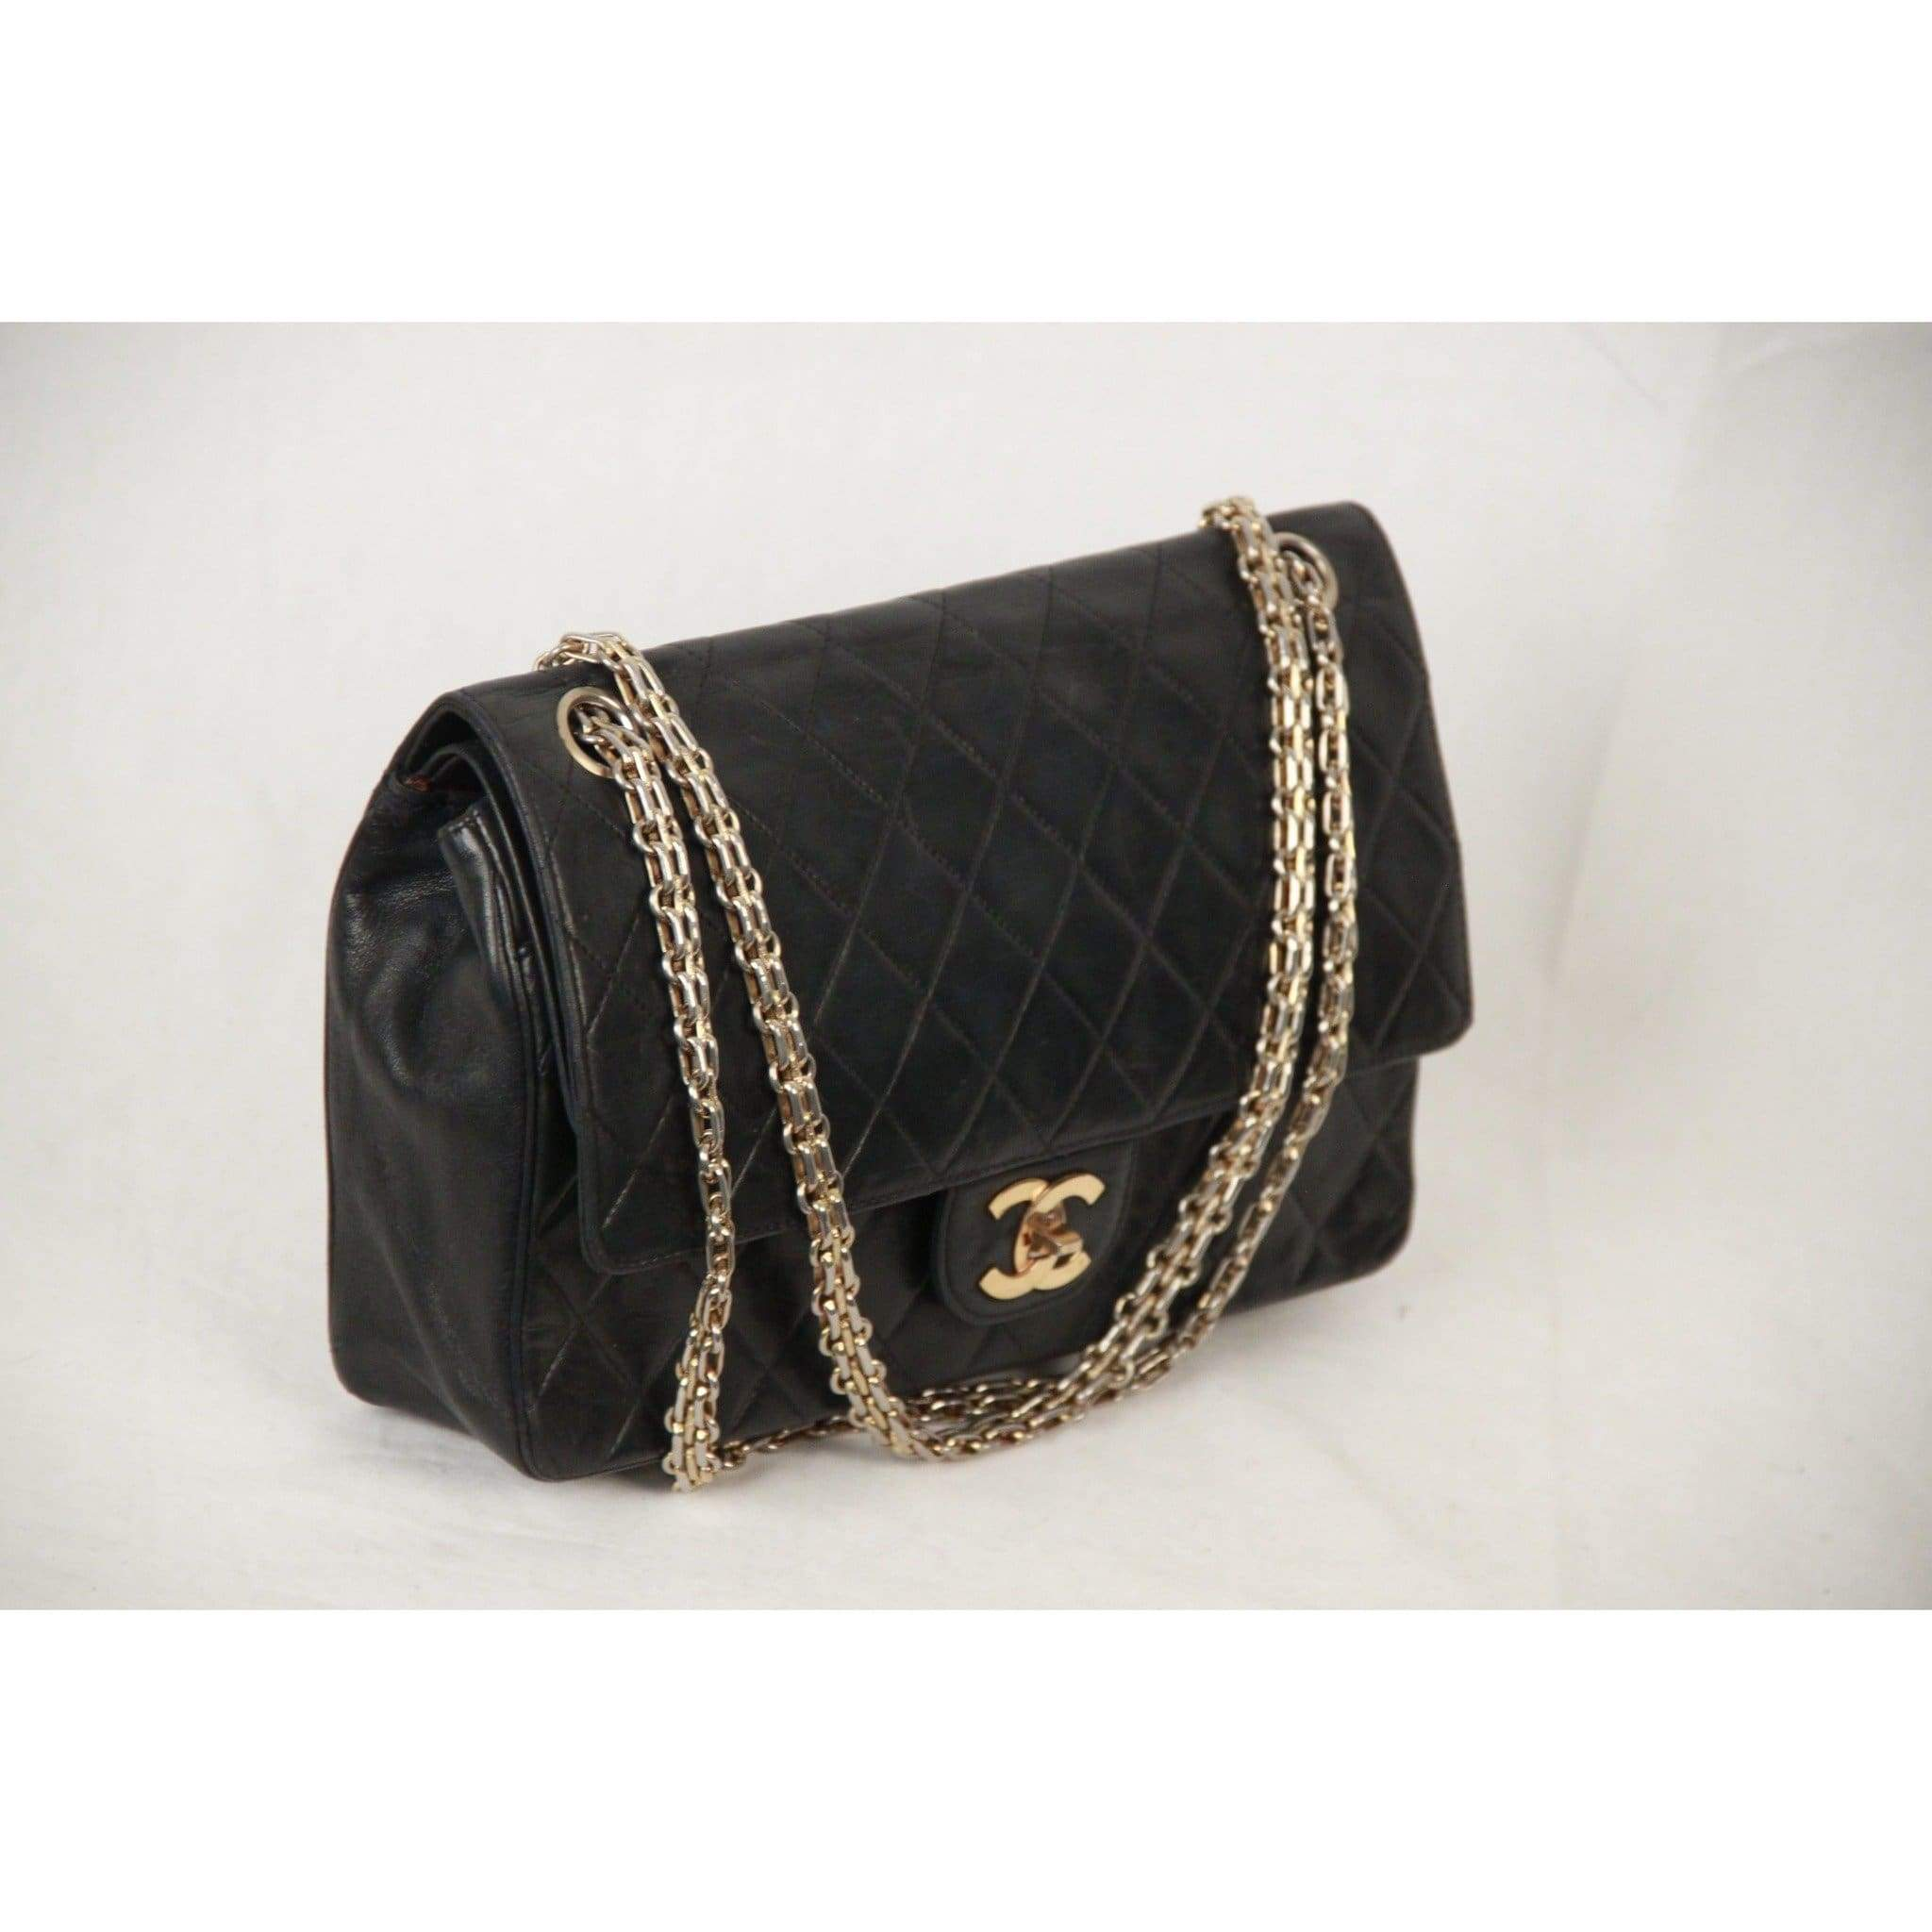 a17774d8e1db Chanel Vintage Blue Quilted Leather 2.55 Double Flap Bag Mademoiselle Chain  Opherty   Ciocci